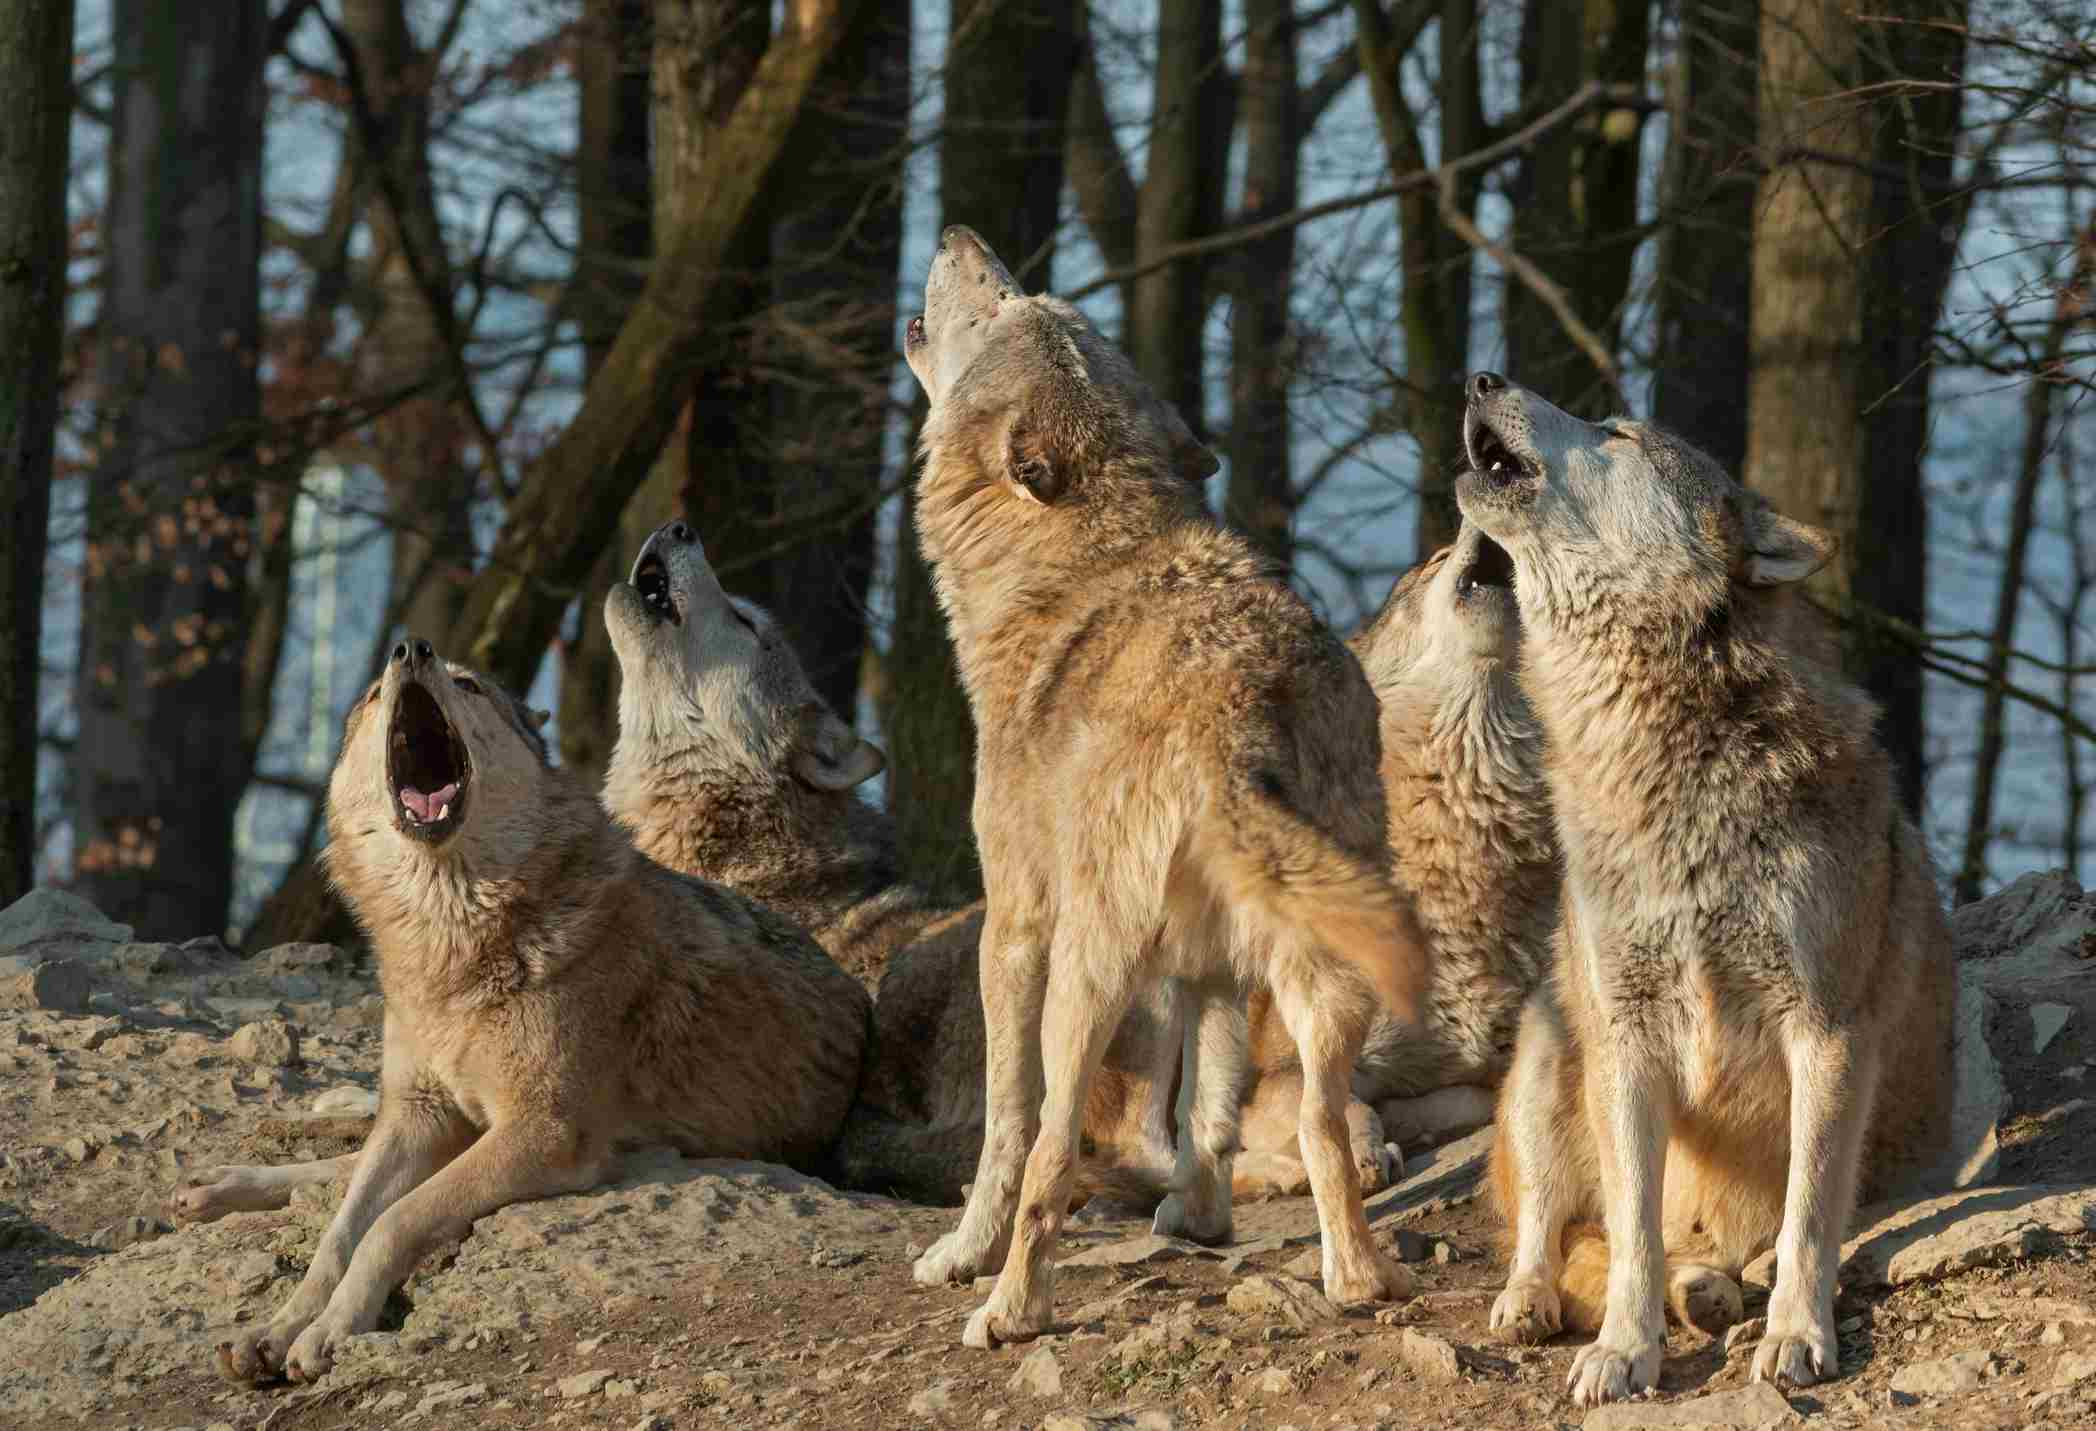 Howling canadian timberwolves in front of a forest.